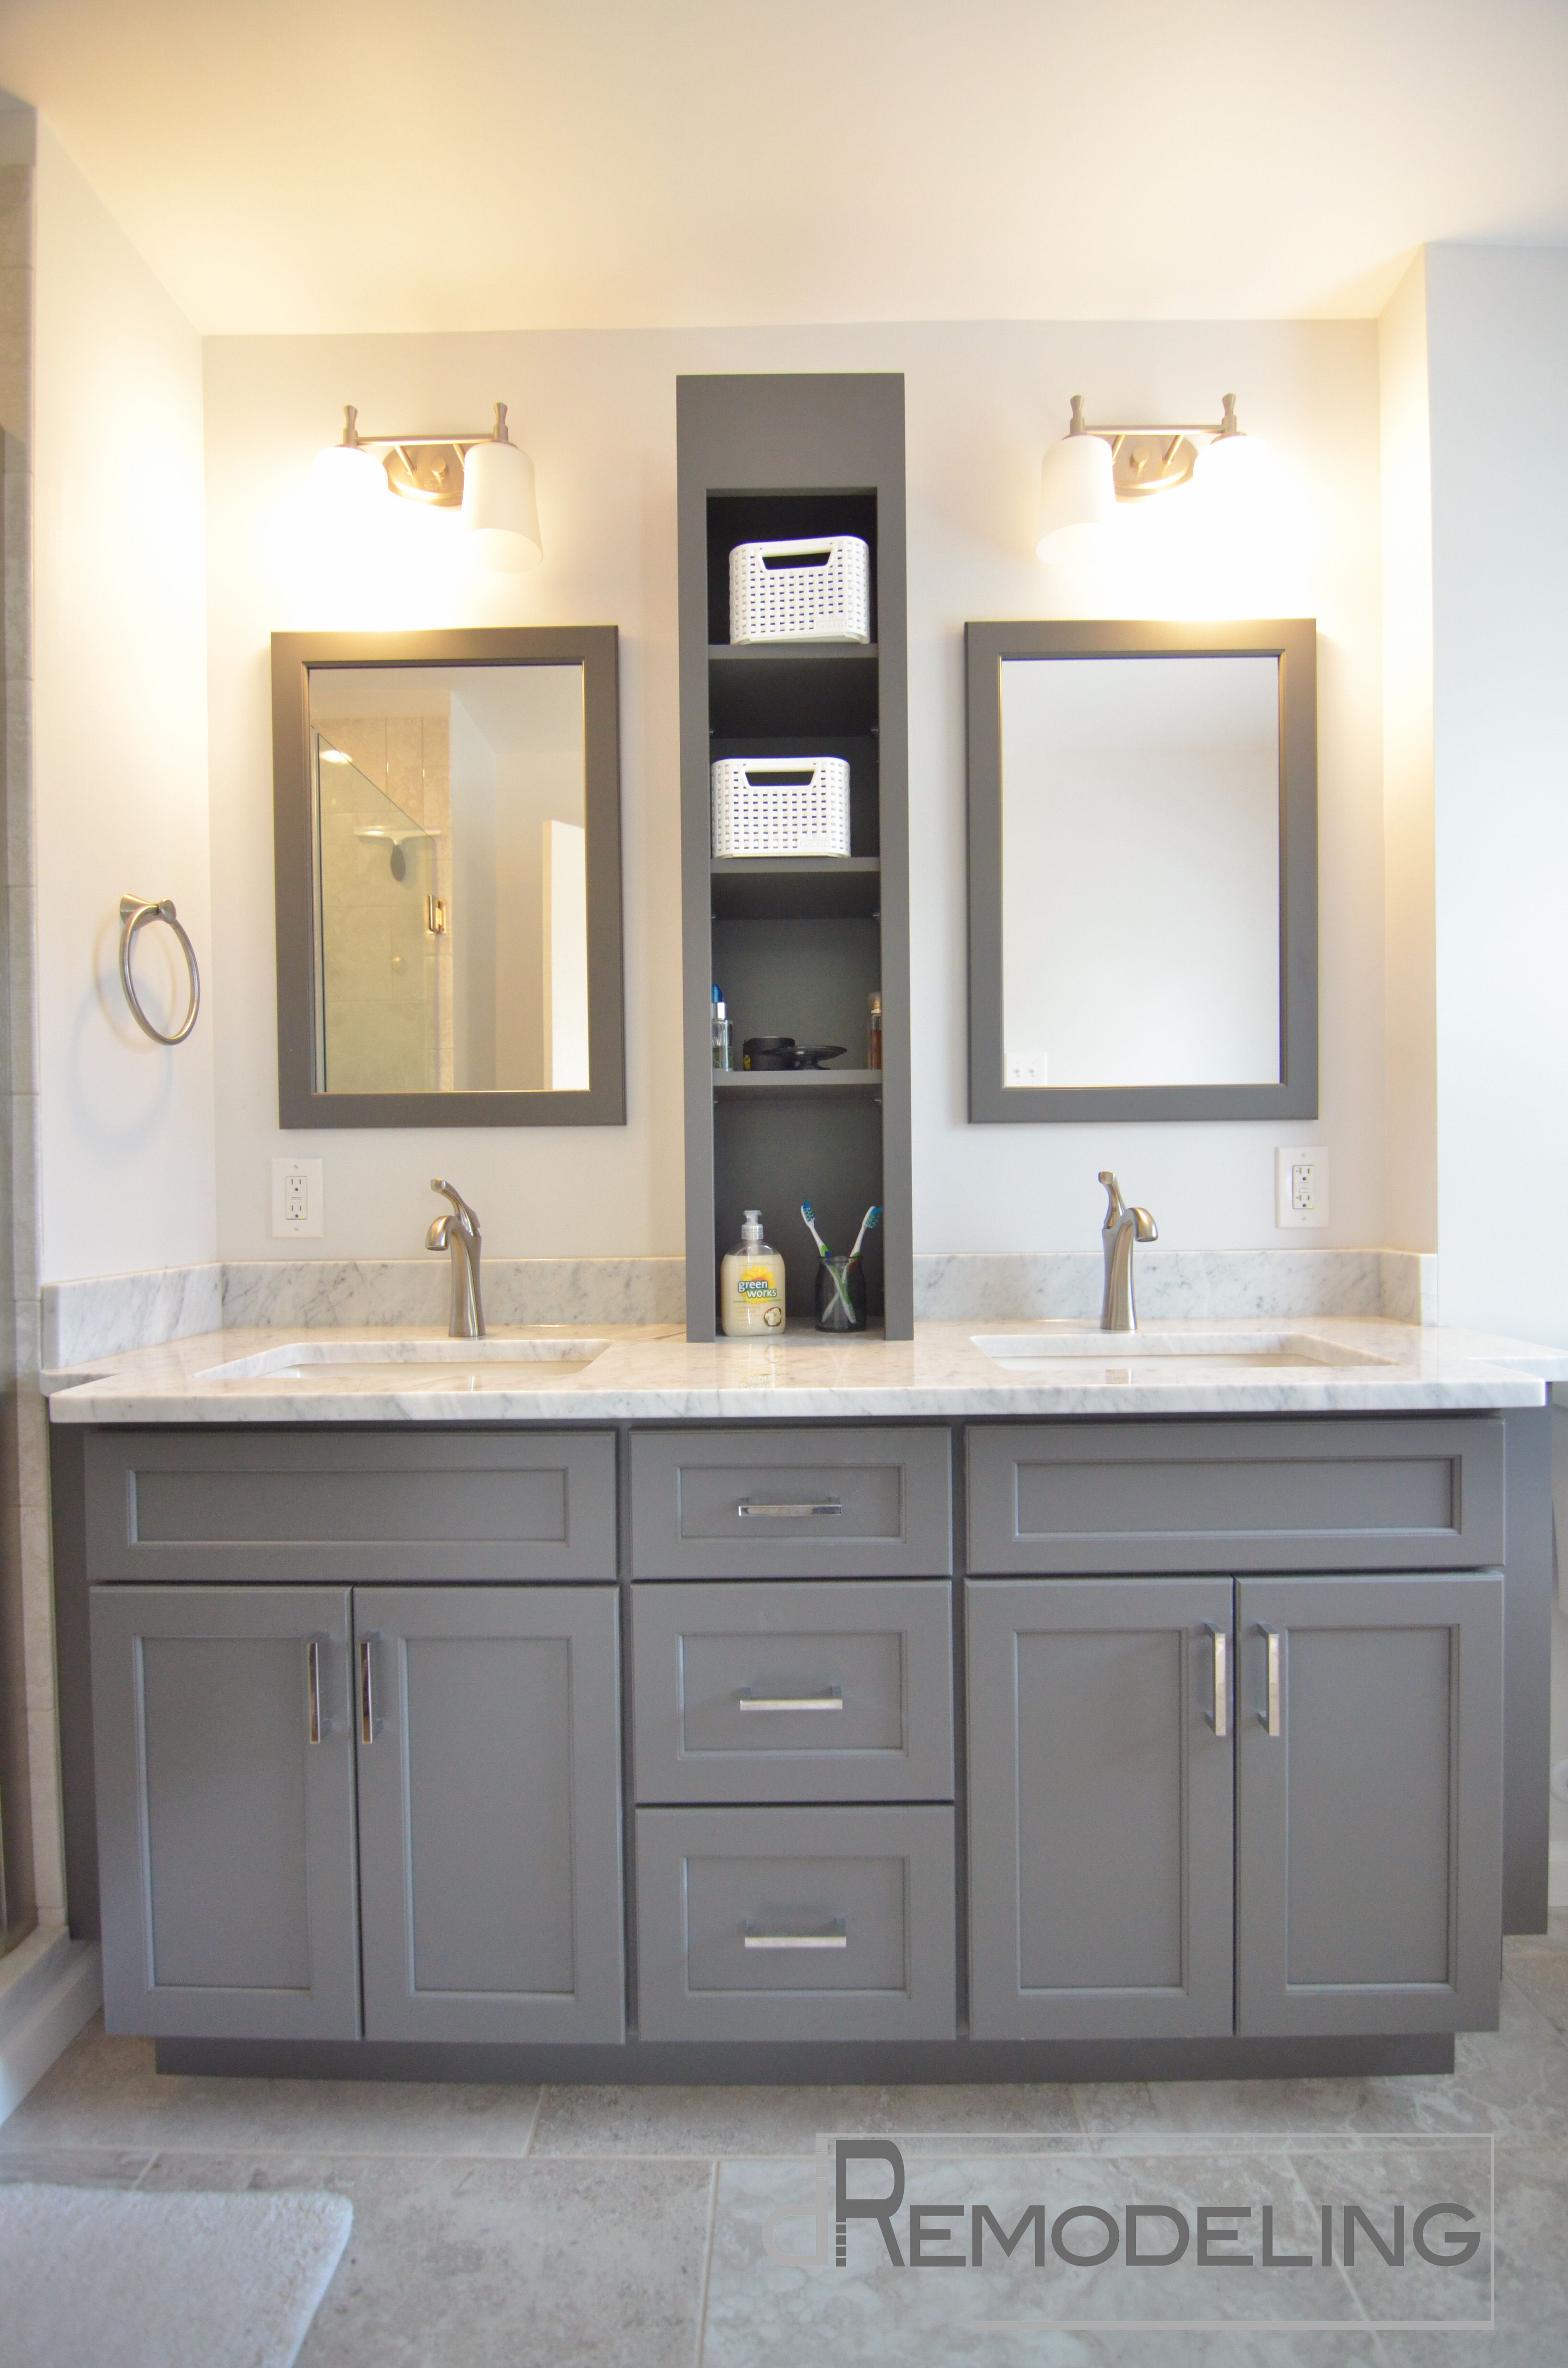 Twencent gray vanity for contemporary bathrooom furniture decoration palatial double wall mounted rectangle mirror frames over double gray vanity and white